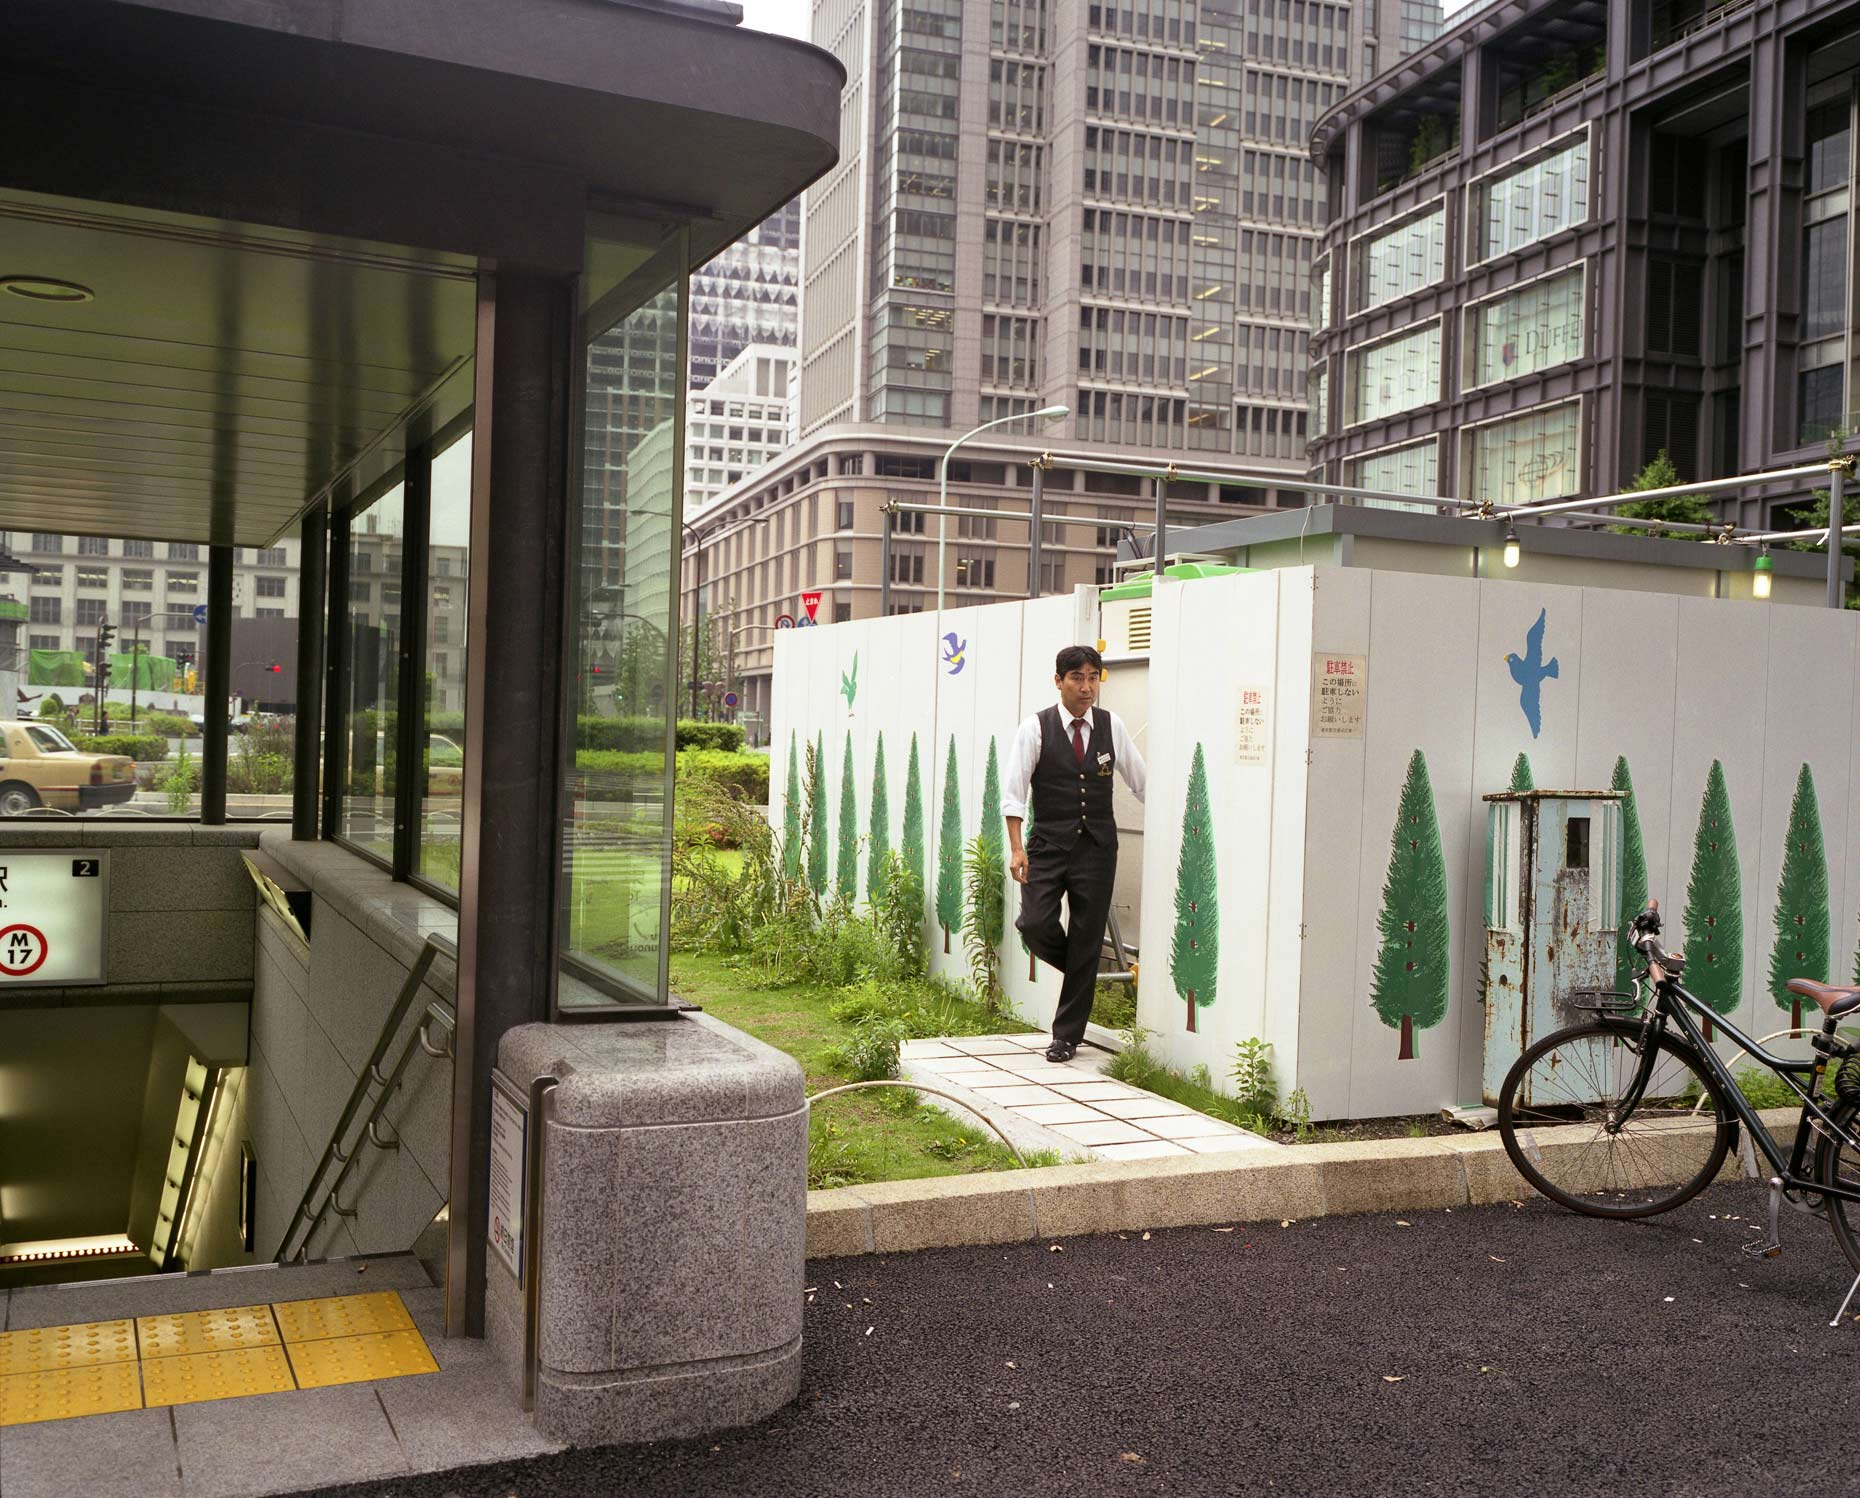 hoardings decorated with tree motifs, Tokyo, Japan.